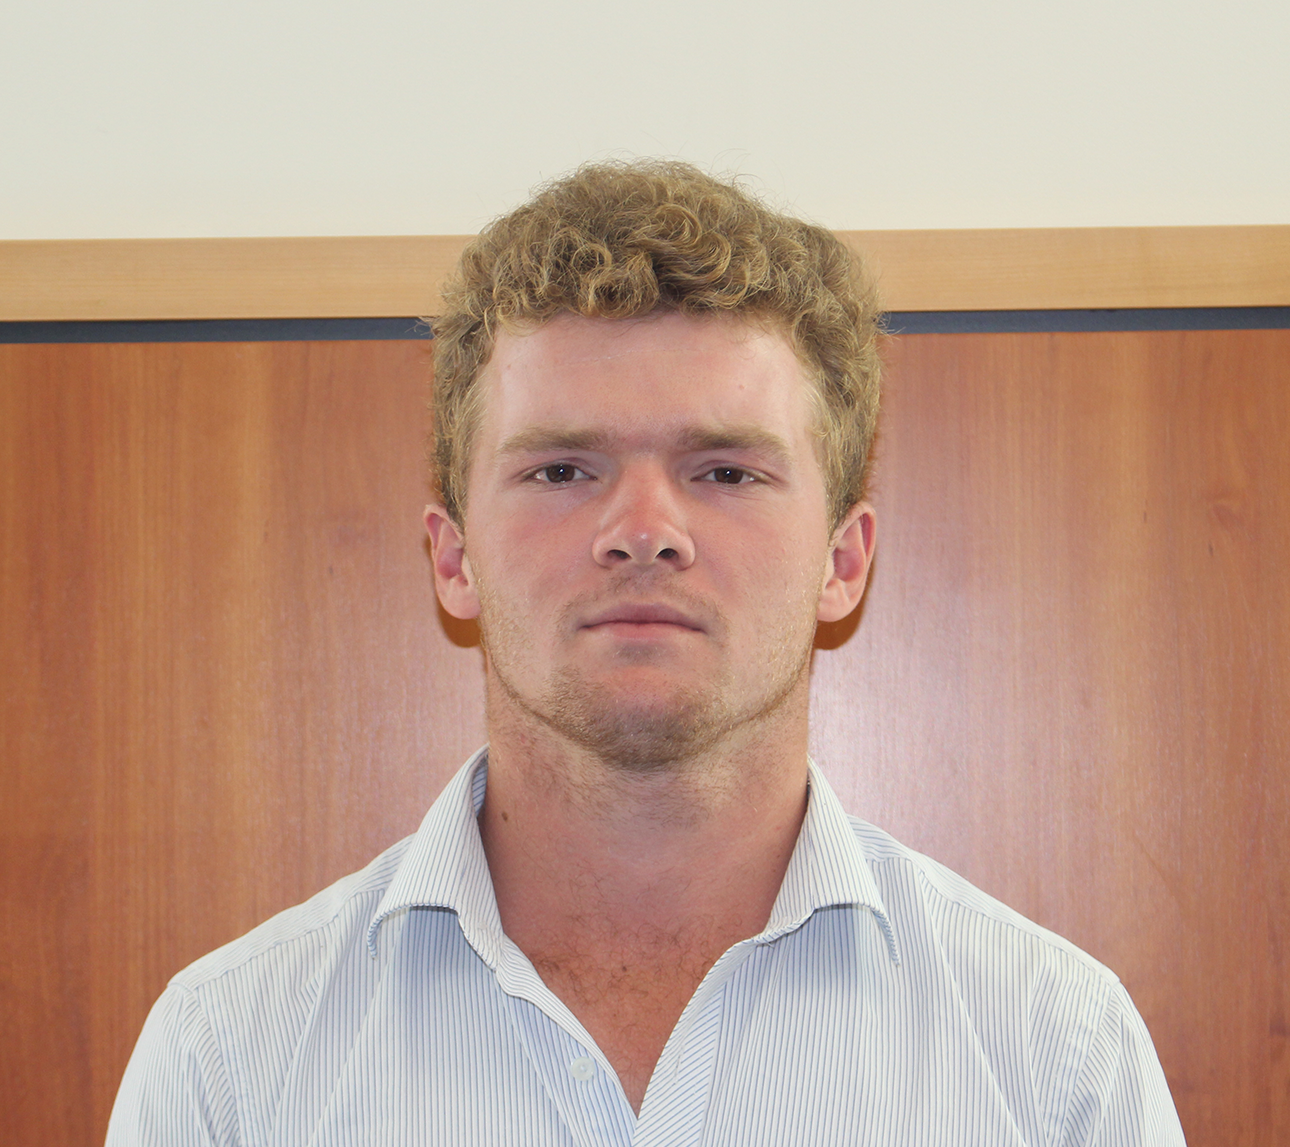 Michael Baker, The chairperson of Ashburton Youth Council